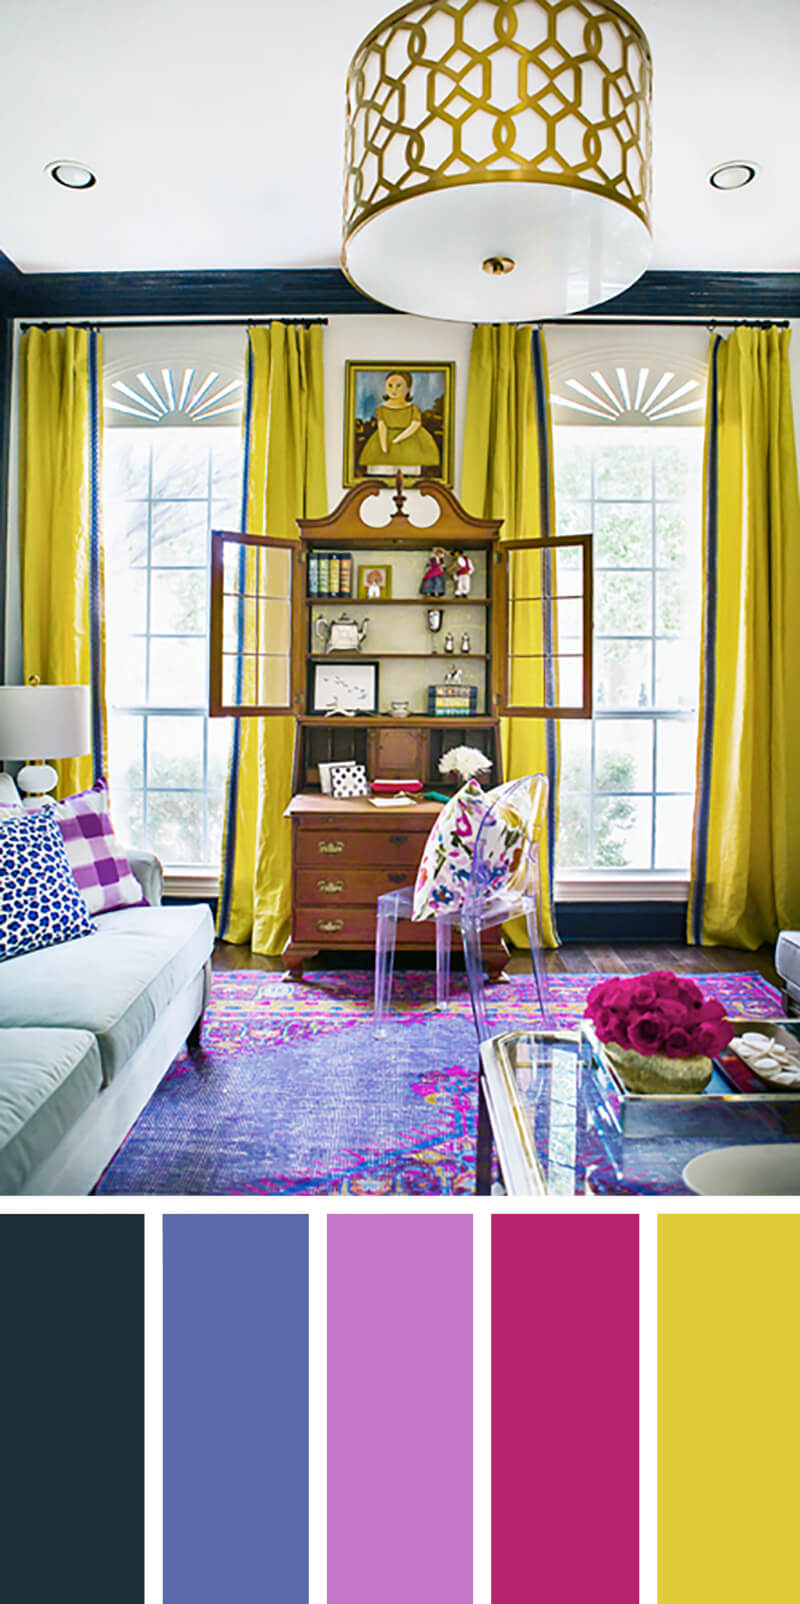 7 Best Living Room Color Scheme Ideas and Designs for 2017 on Colourful Living Room  id=86450